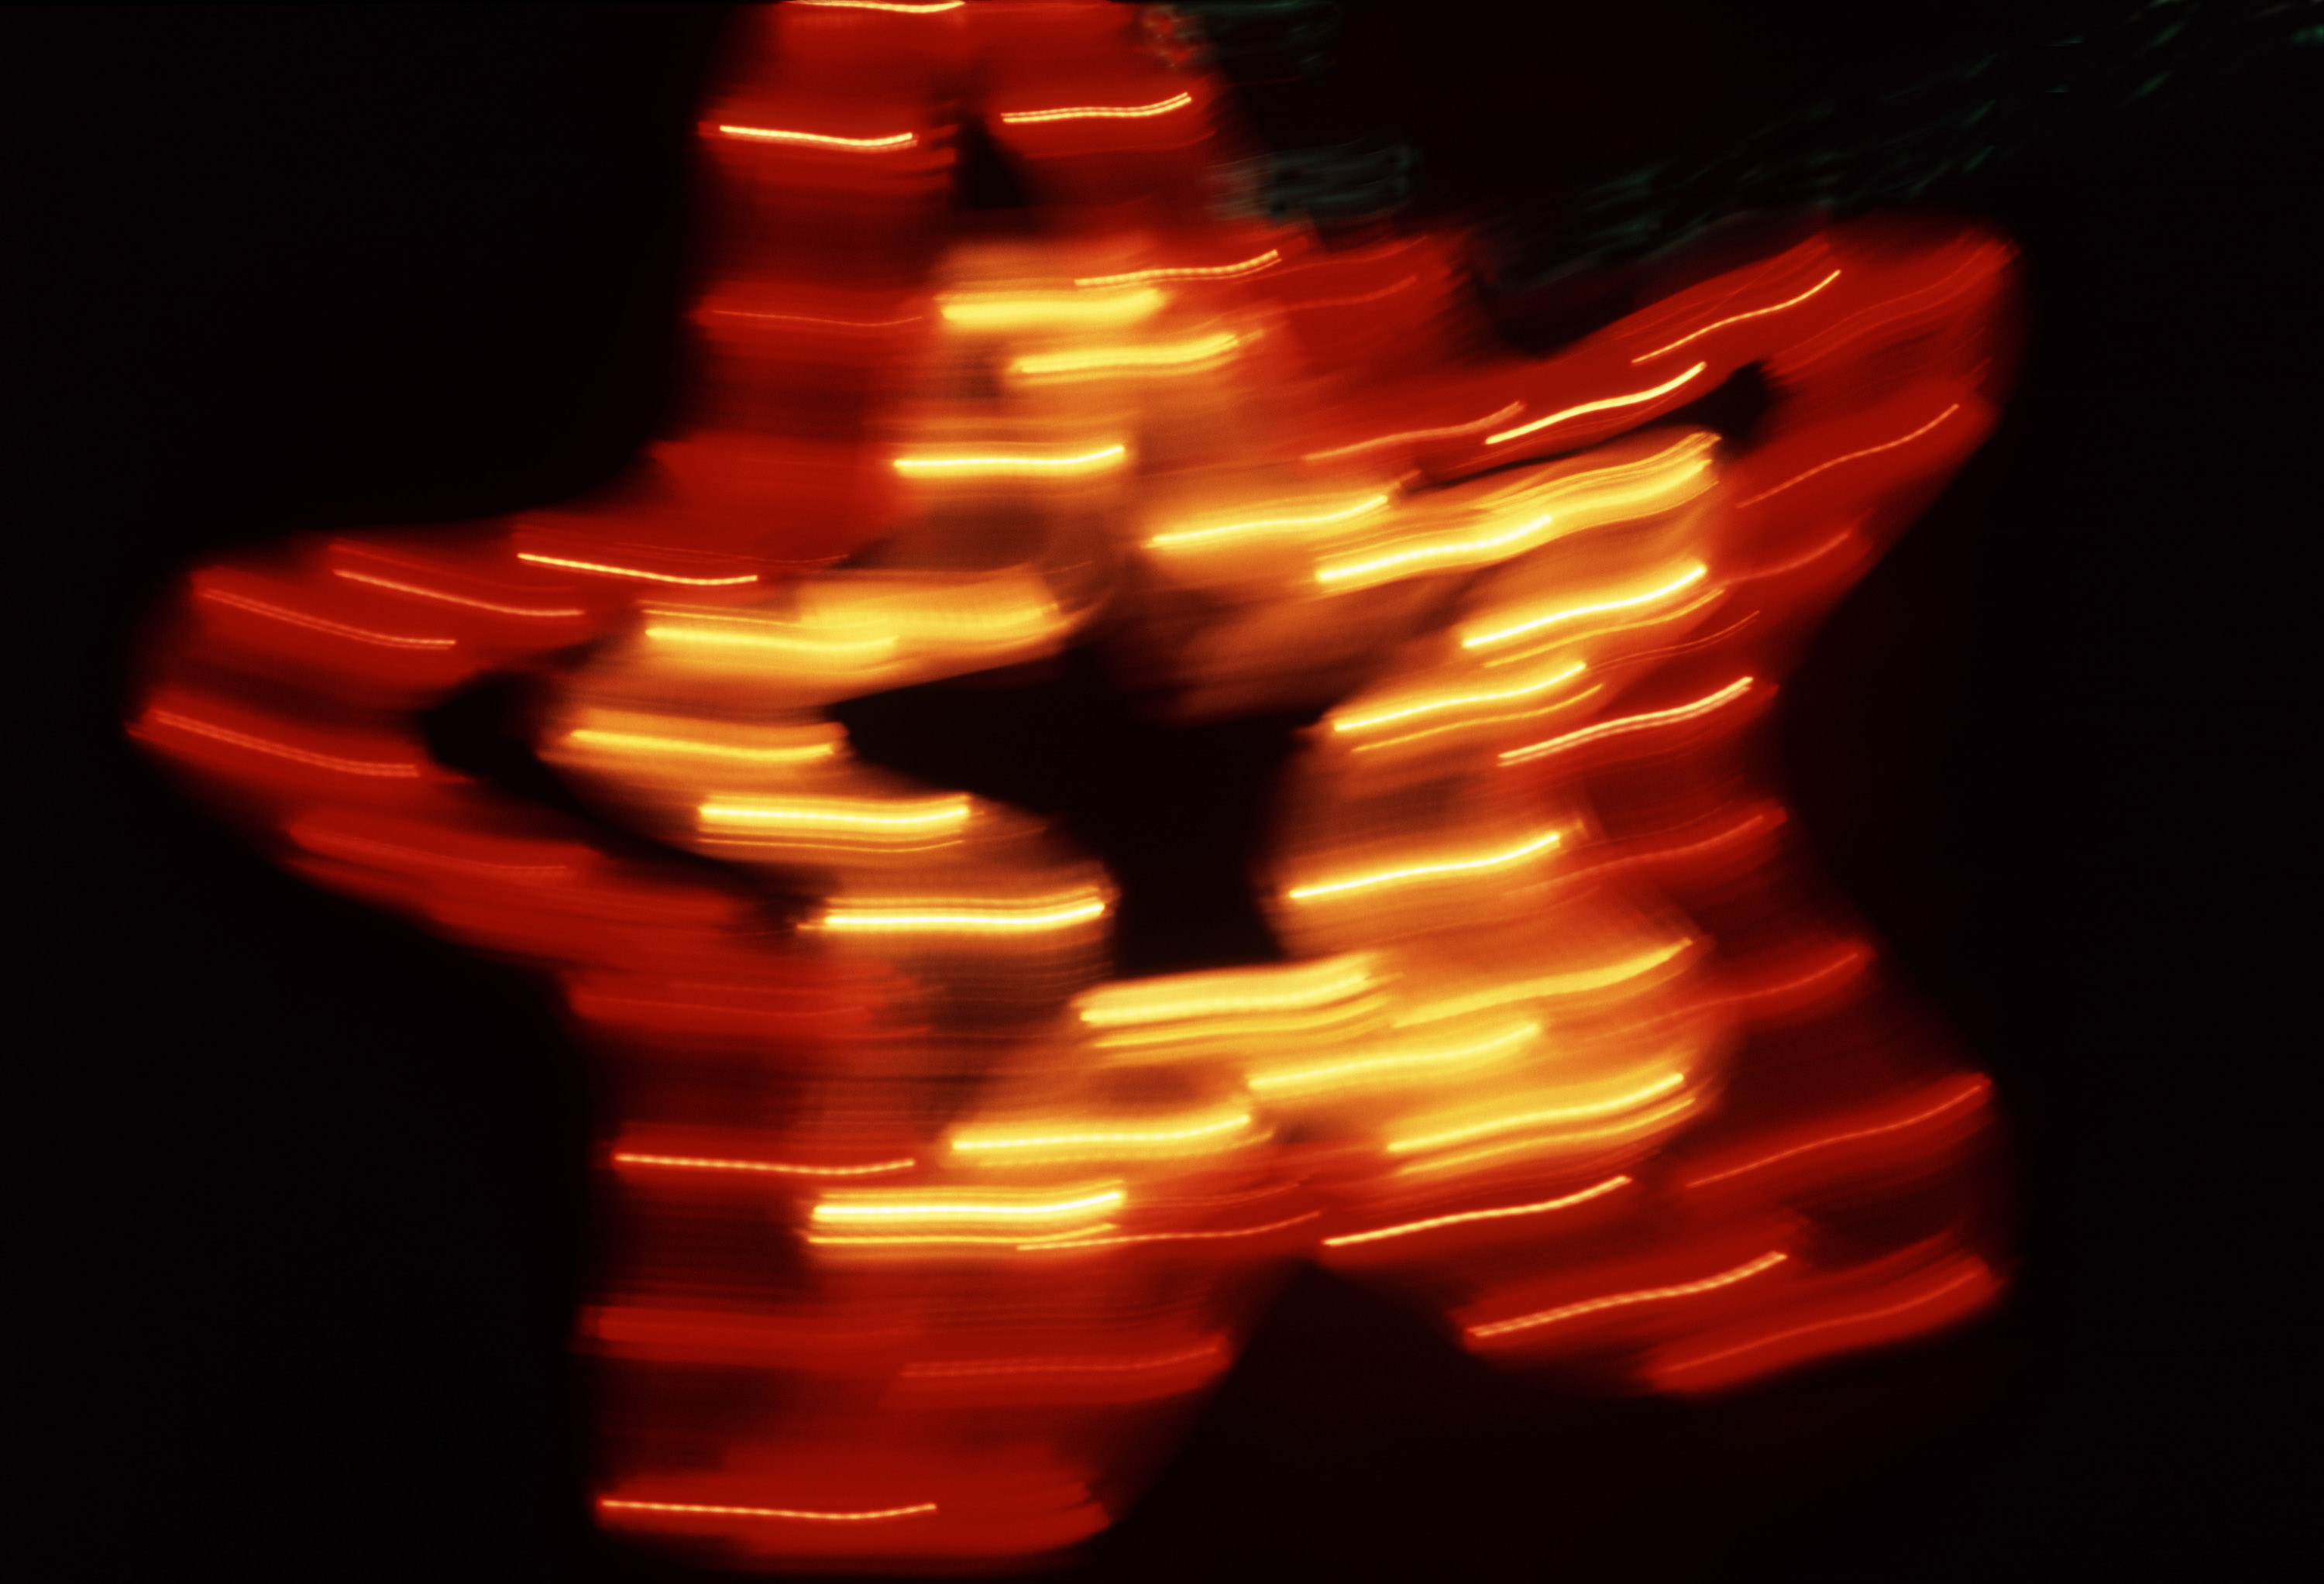 blurred: a red and yellow illuminated christmas star